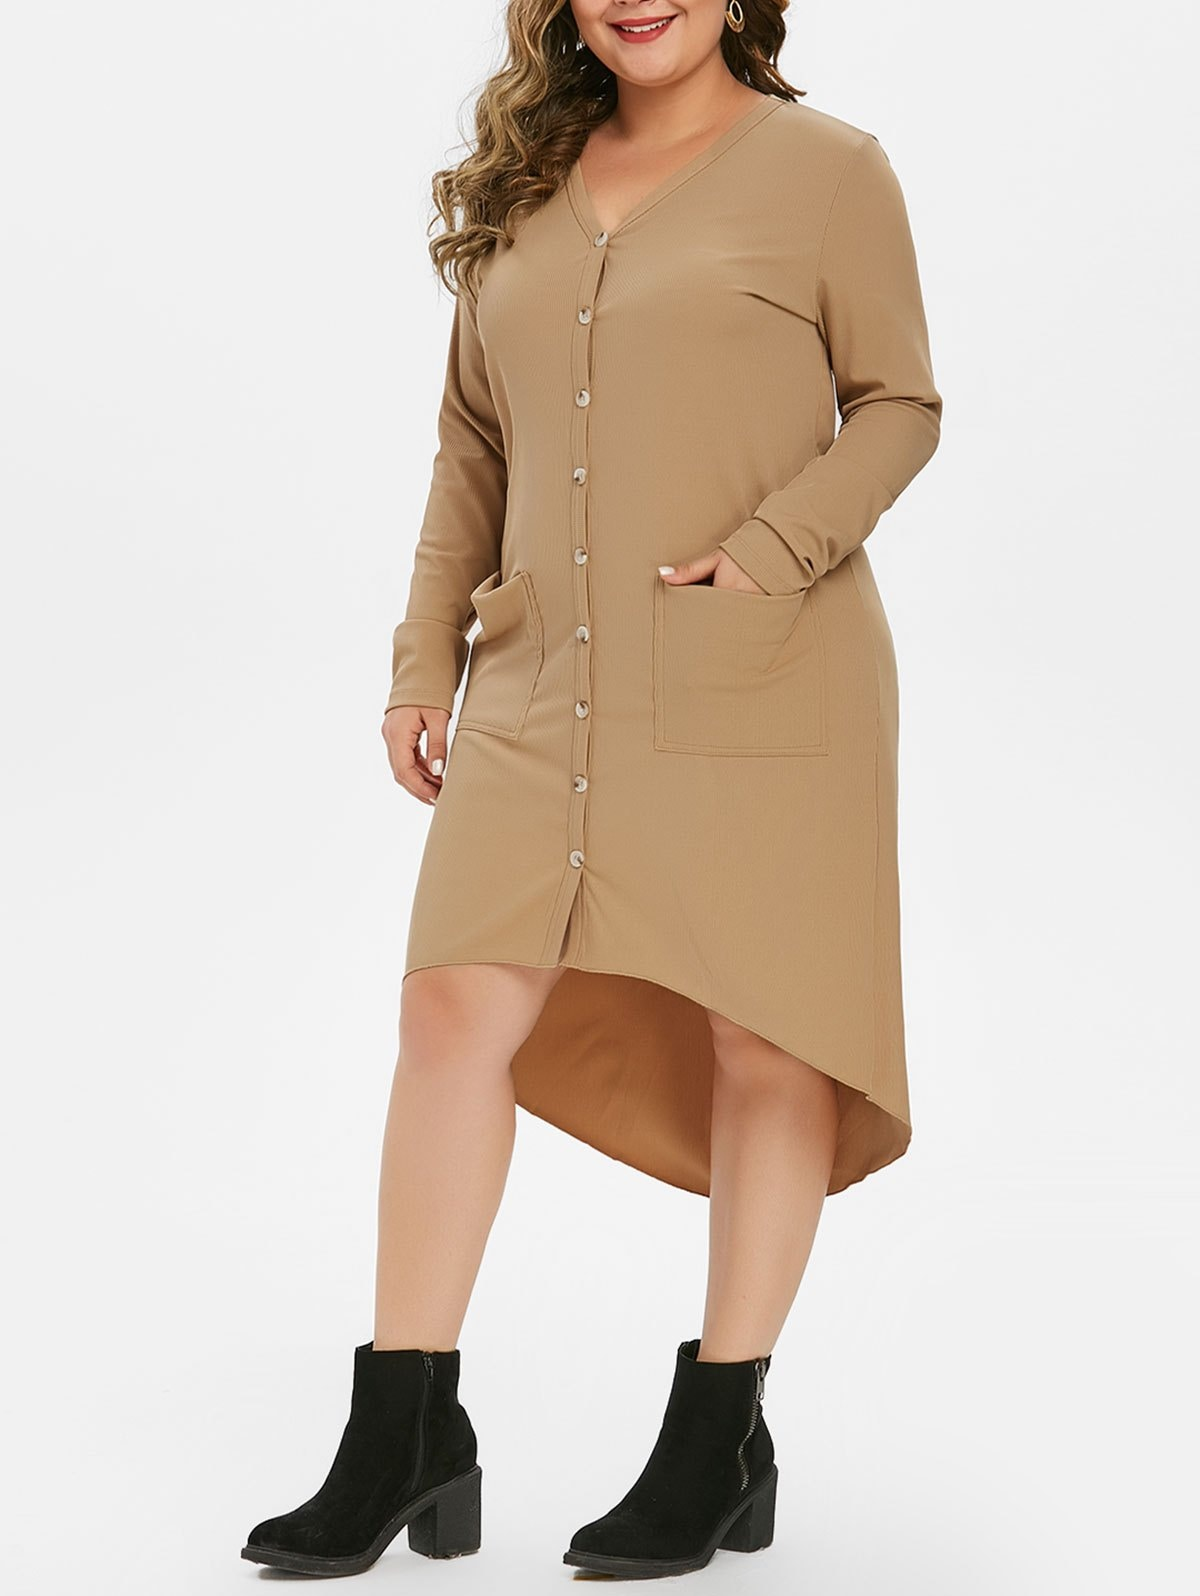 Button Up Pockets High Low Ribbed Plus Size Cardigan